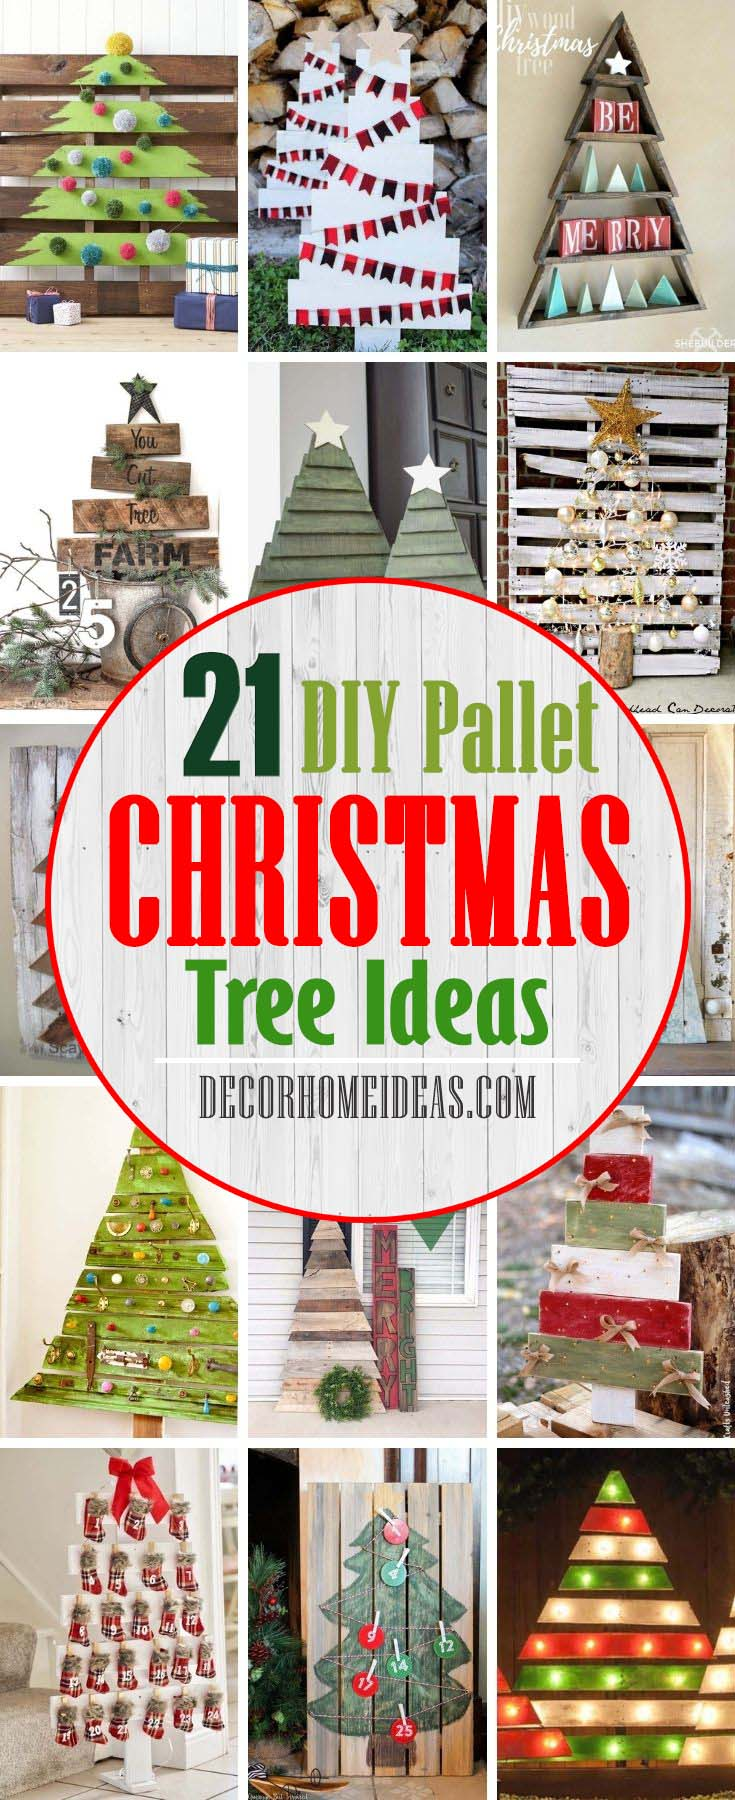 Best DIY Pallet Christmas Tree Ideas. Making. Making DIY pallet Christmas tree is great for the environment because it's making use of scrap wood that would otherwise be thrown out. You'll find your favorite one or make your own version.